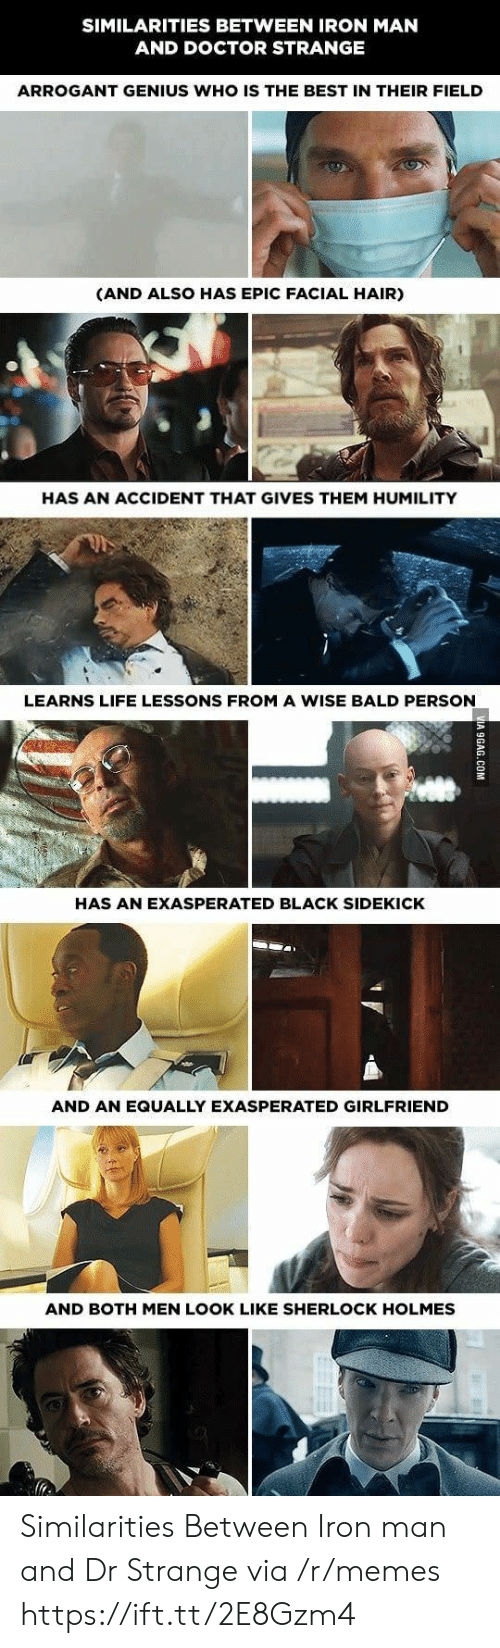 dr strange: SIMILARITIES BETWEEN IRON MAN  AND DOCTOR STRANGE  ARROGANT GENIUS WHO IS THE BEST IN THEIR FIELD  (AND ALSO HAS EPIC FACIAL HAIR)  HAS AN ACCIDENT THAT GIVES THEM HUMILITY  LEARNS LIFE LESSONS FROM A WISE BALD PERSON  HAS AN EXASPERATED BLACK SIDEKICK  AND AN EQUALLY EXASPERATED GIRLFRIEND  AND BOTH MEN LOOK LIKE SHERLOCK HOLMES Similarities Between Iron man and Dr Strange via /r/memes https://ift.tt/2E8Gzm4